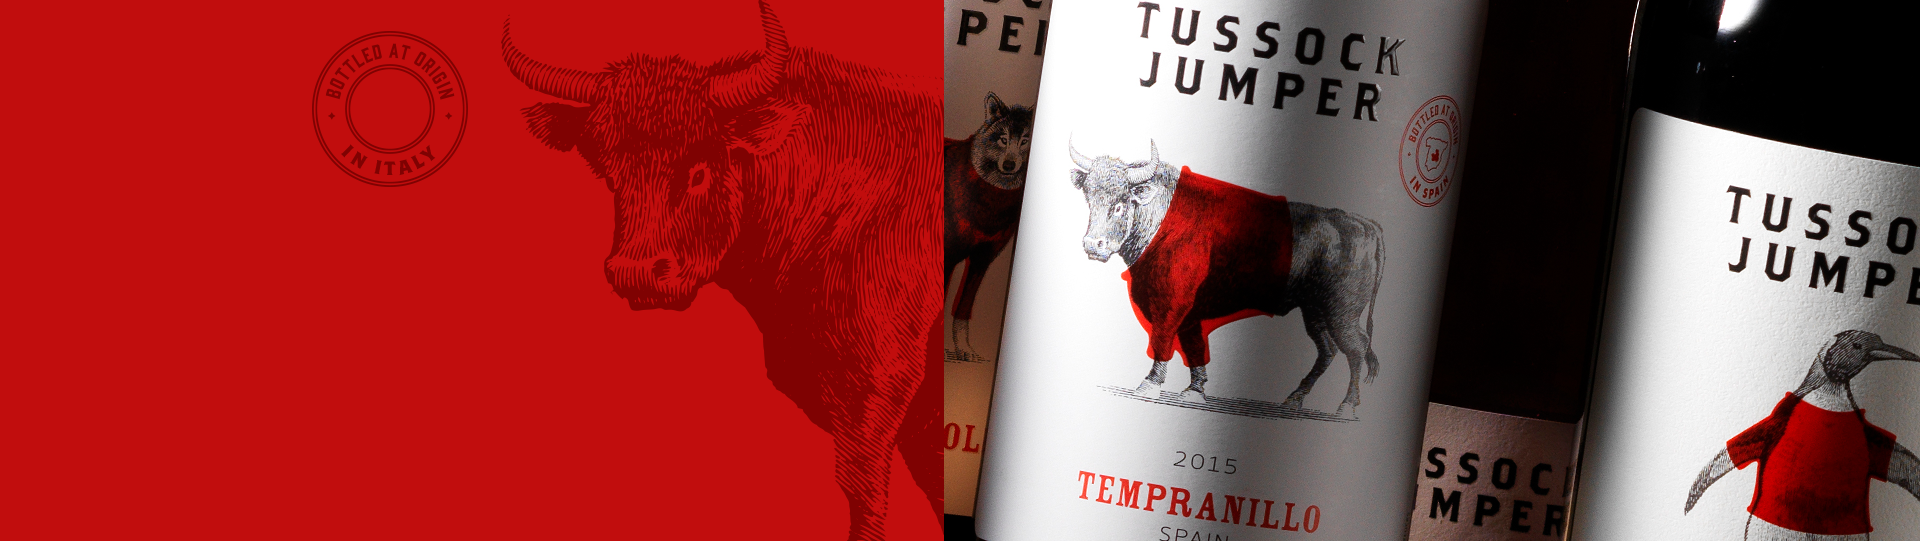 Tussock Jumper Wines - Spain - Tempranillo